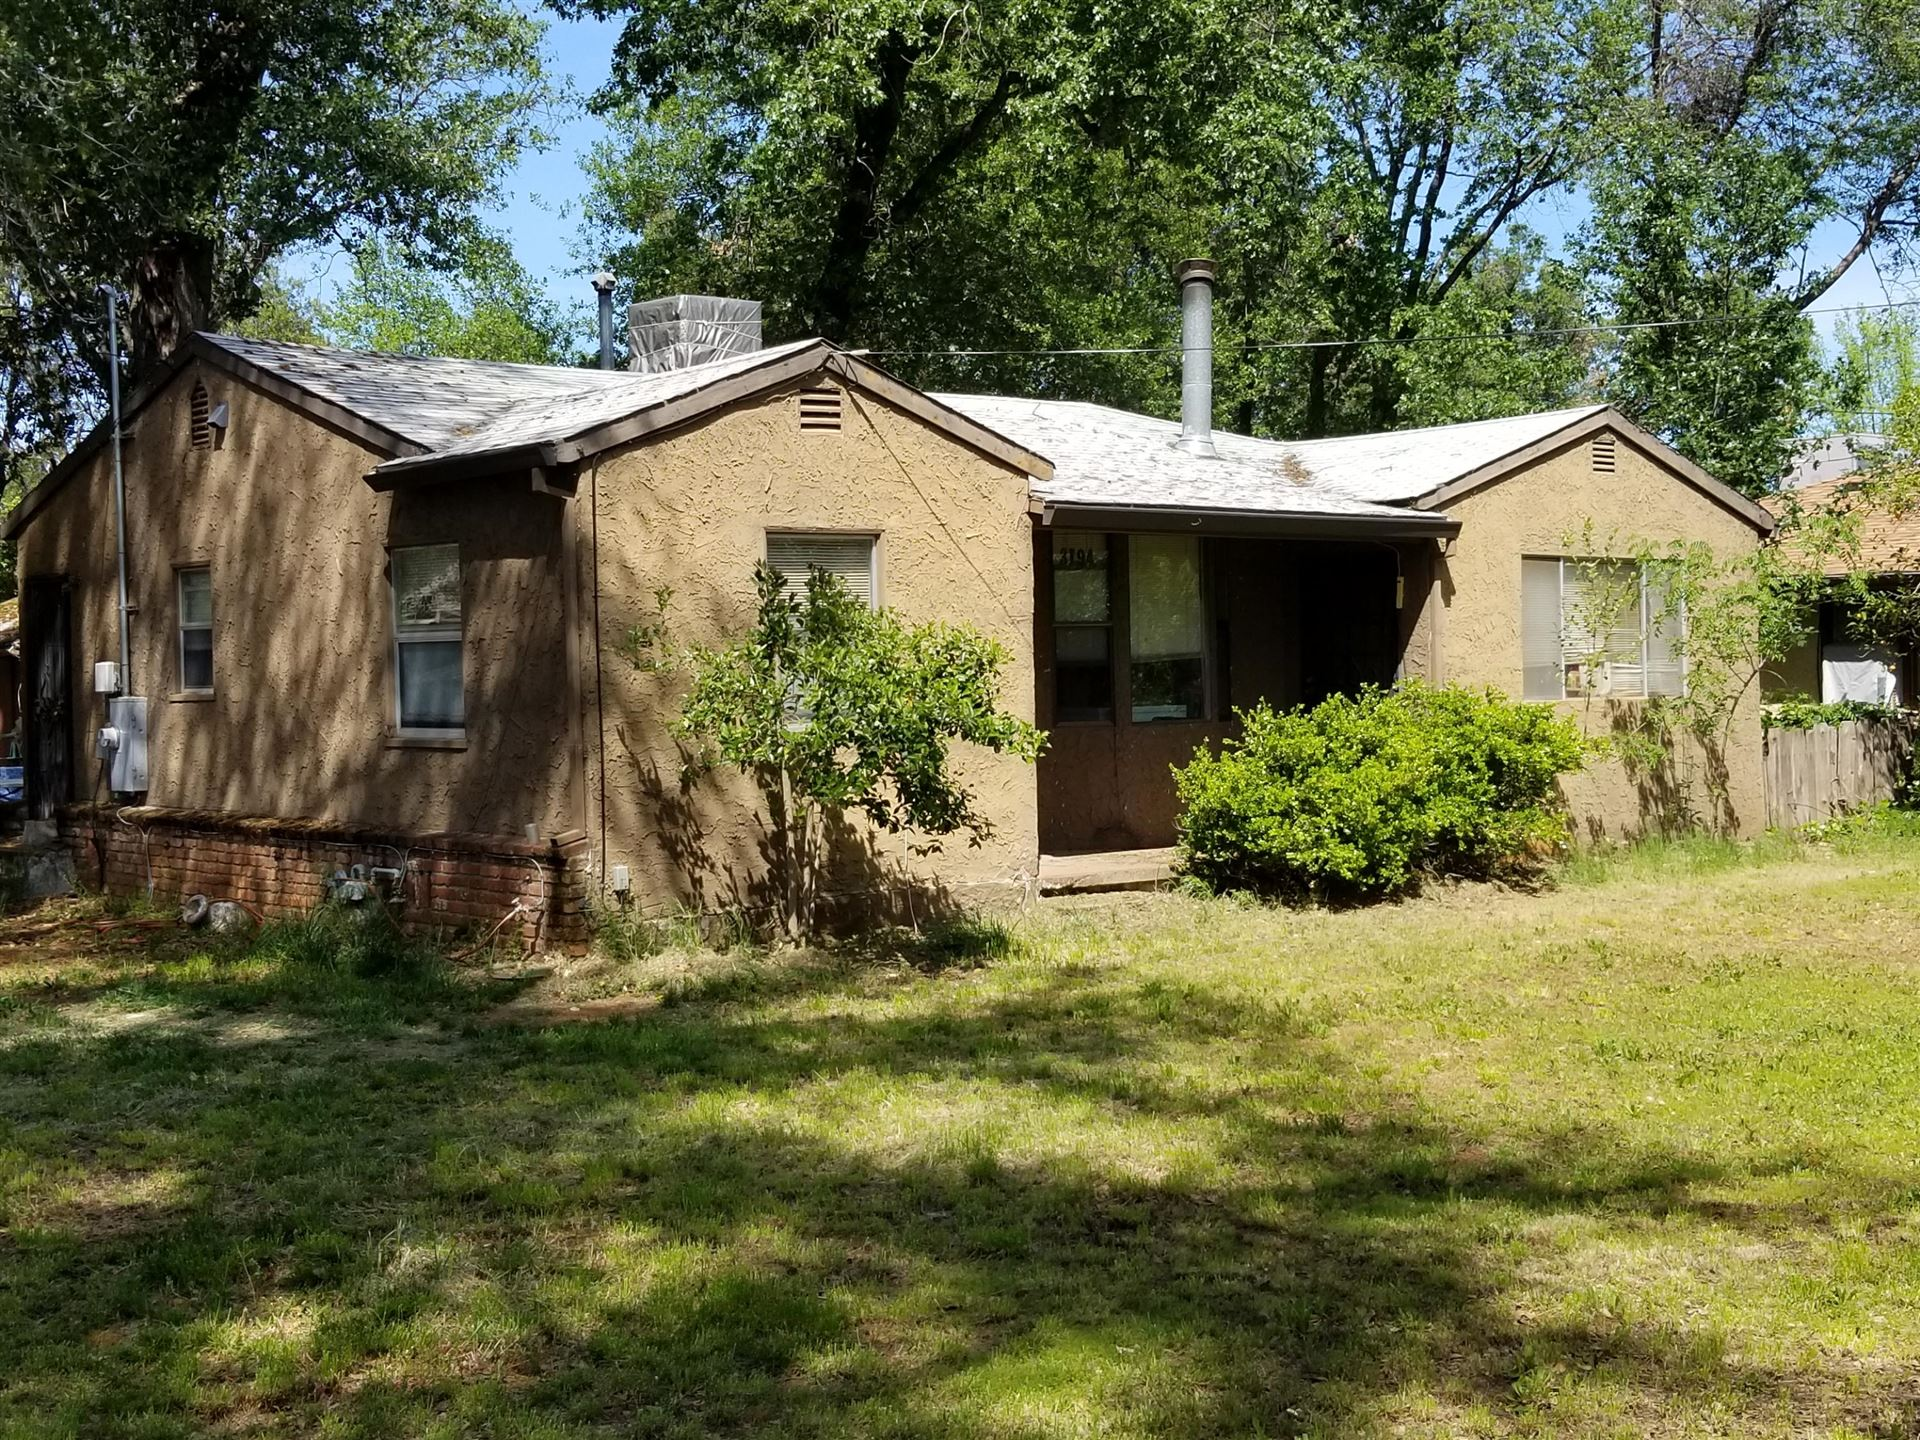 3194 School St, Redding, CA 96002 - MLS#: 19-2341